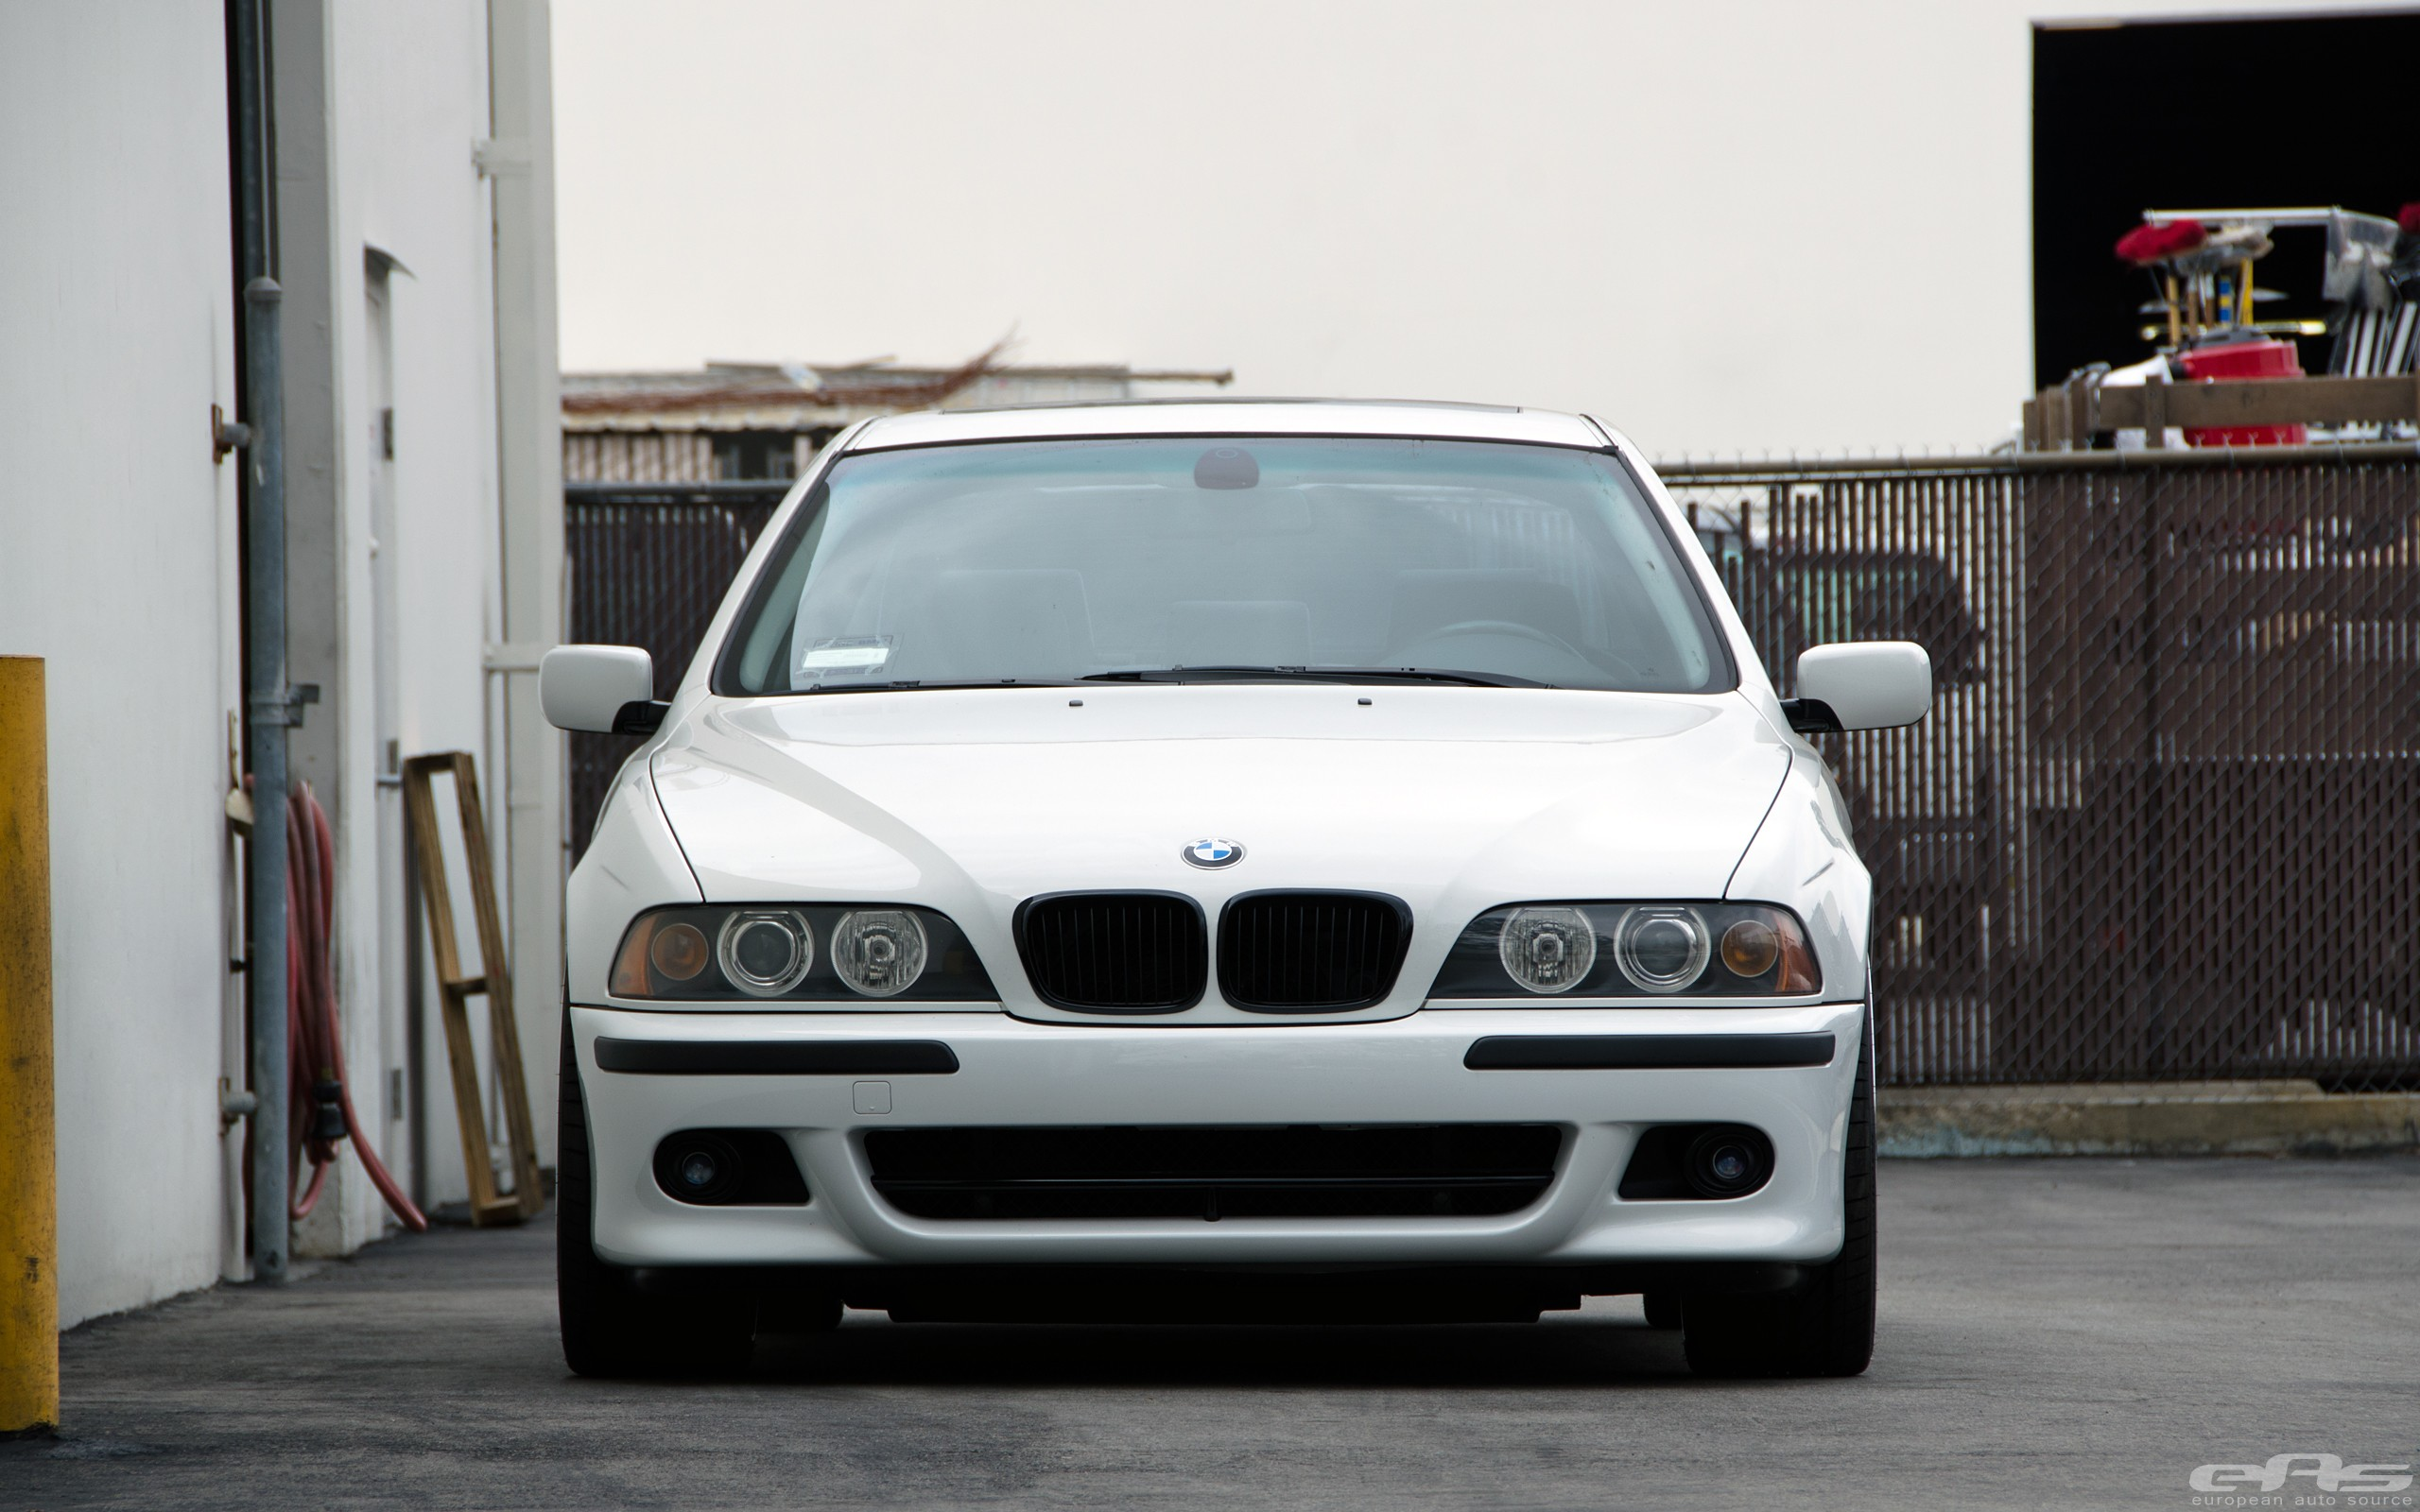 Bmw E39 530i Gets Lower At Eas Still Looks Good Autoevolution